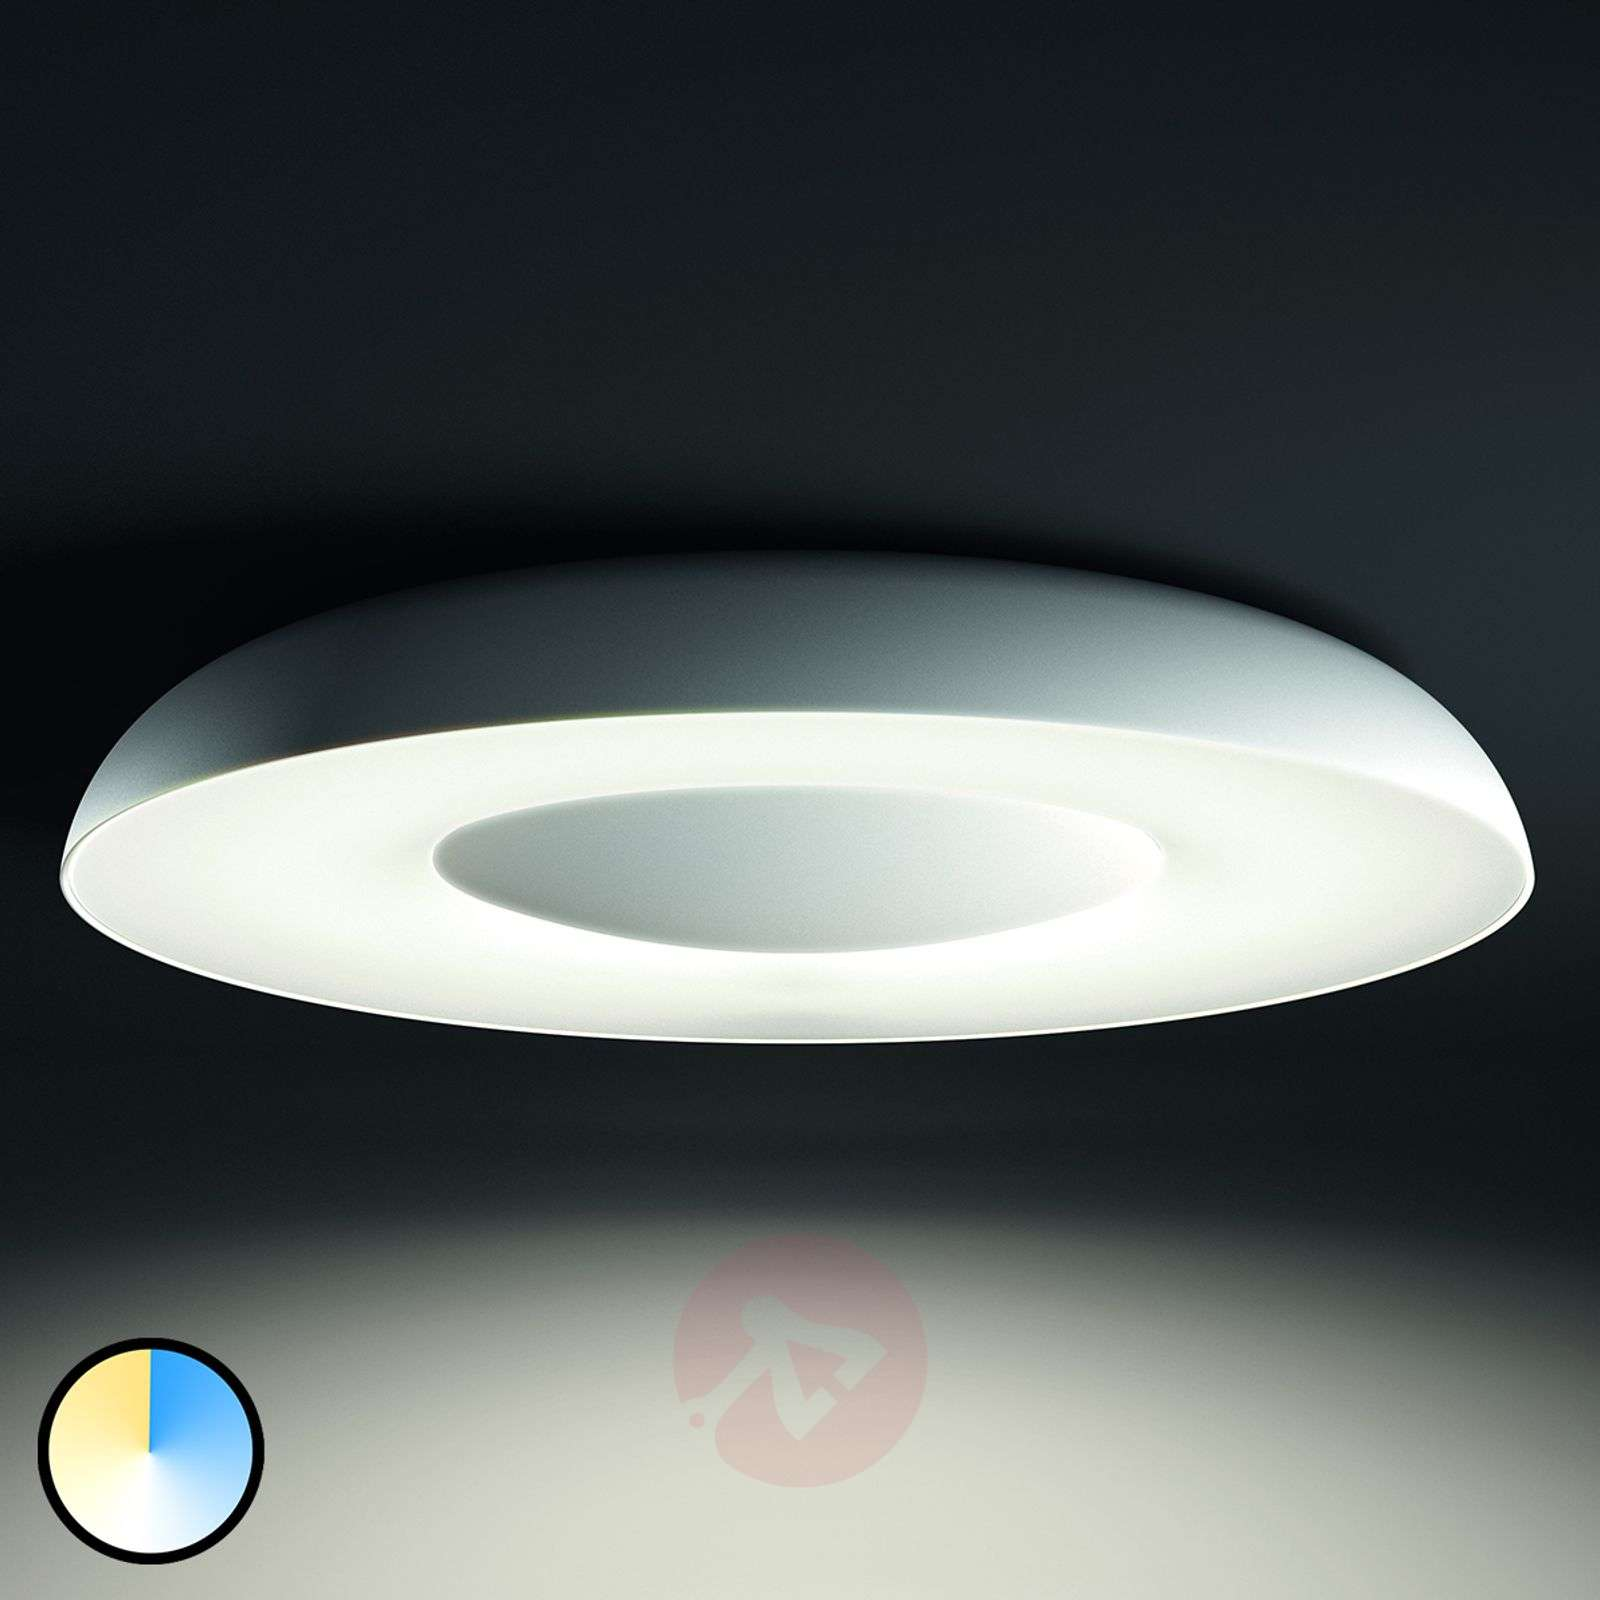 Plafoniere Philips Hue : Acquista plafoniera a led still philips hue lampade